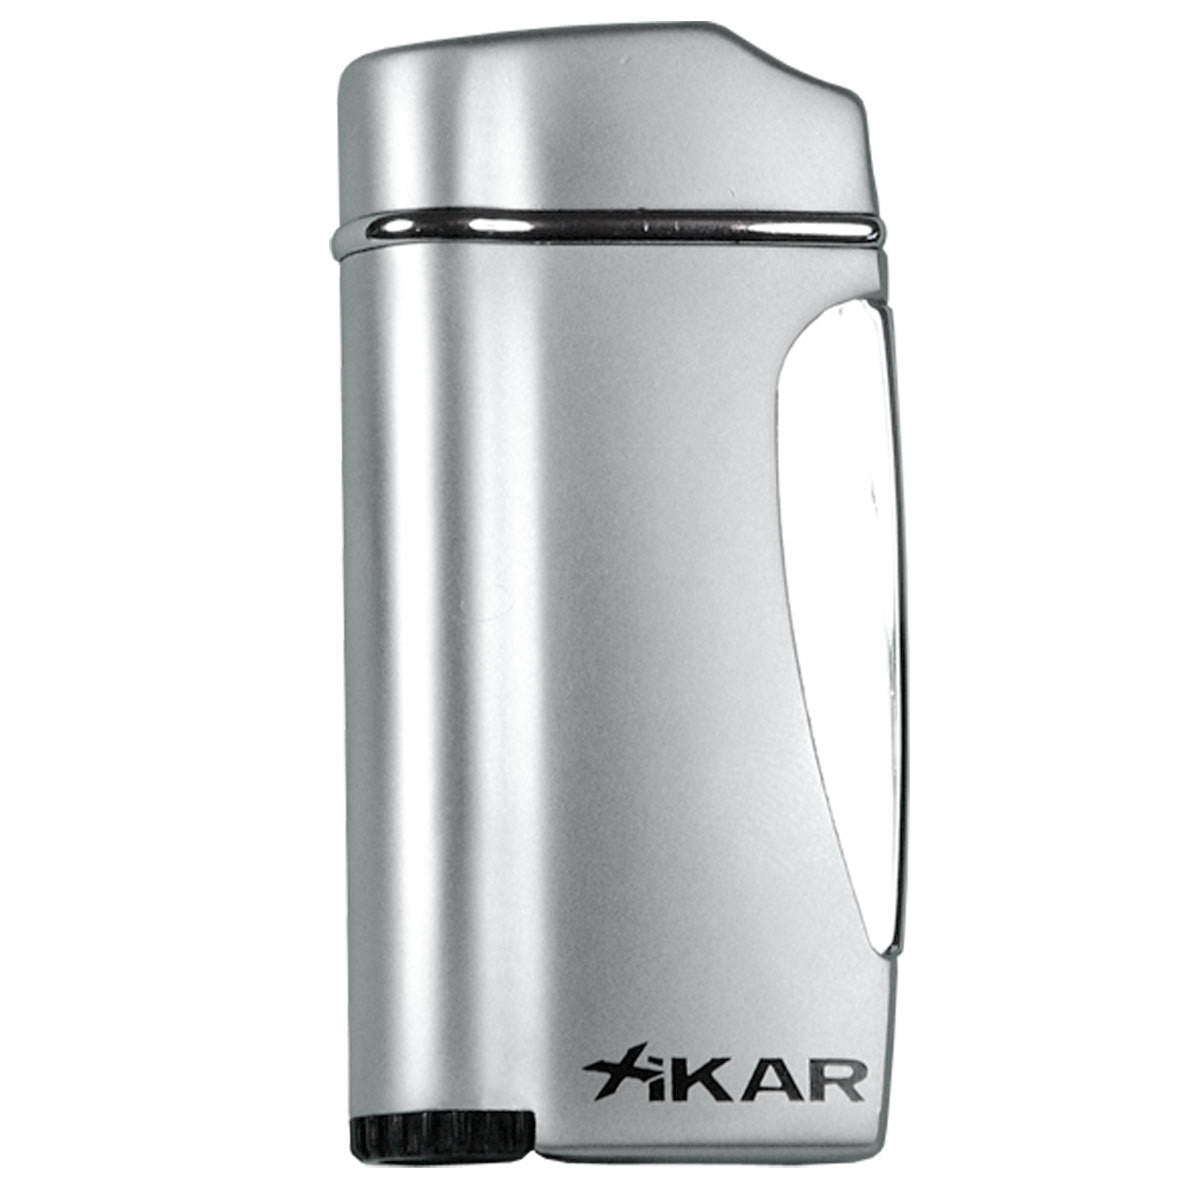 Xikar Executive Lighter Silver - Humidors Wholesaler